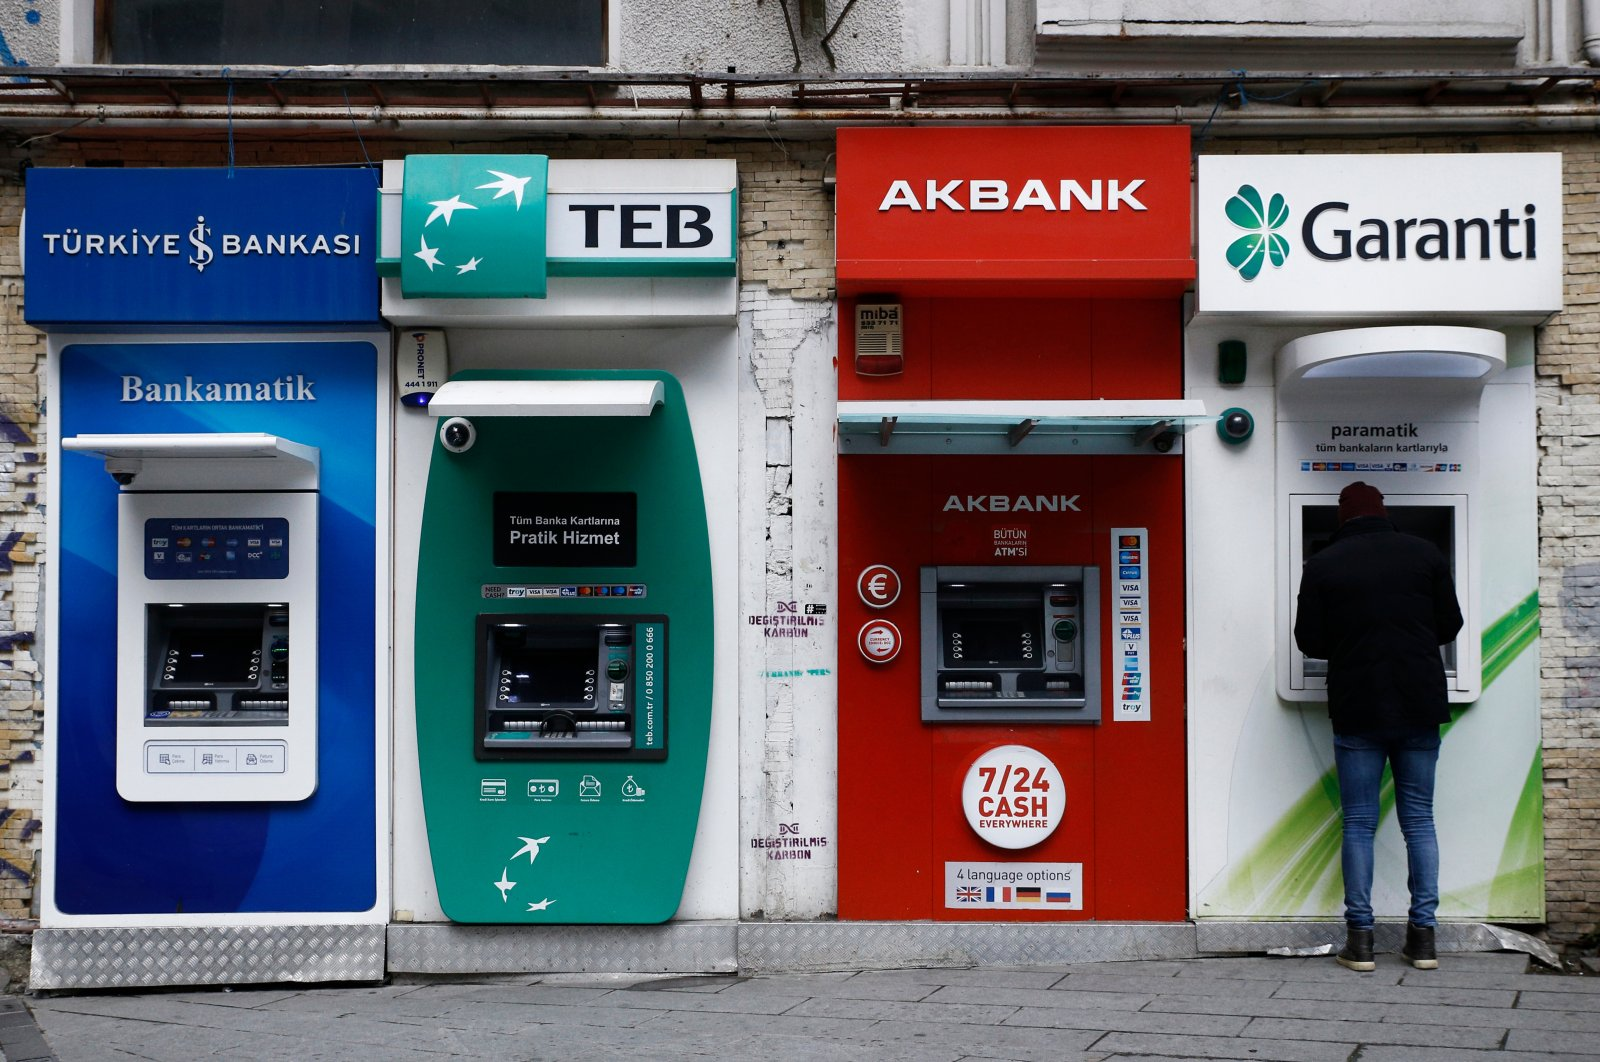 A man uses an ATM, Istanbul, Turkey, Jan. 3, 2019. (Shutterstock Photo)